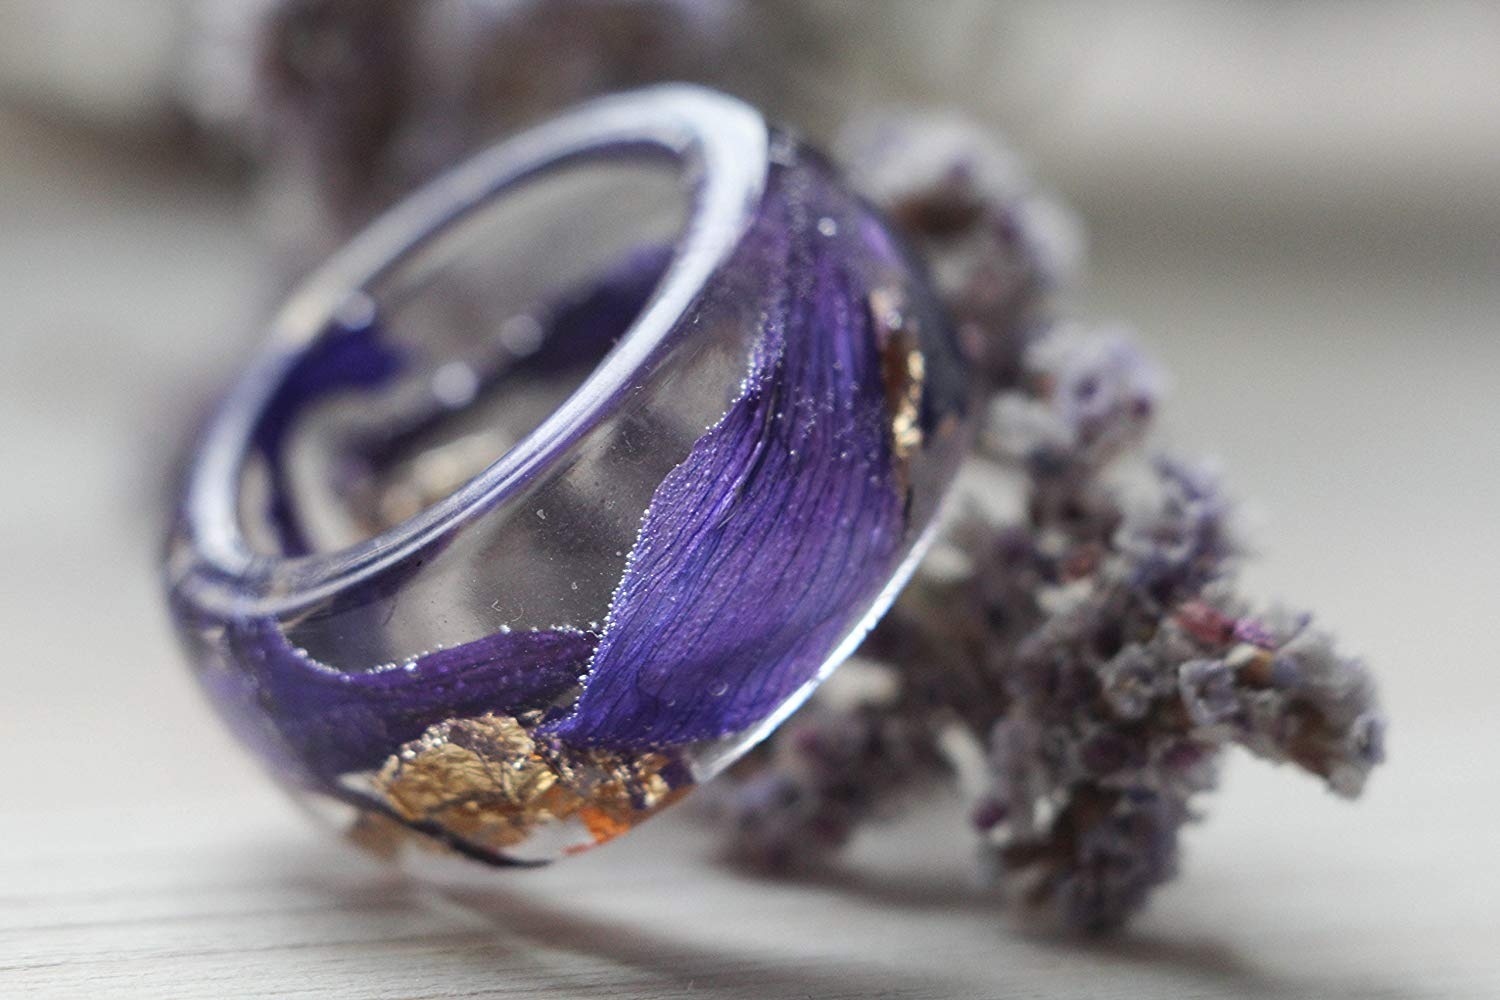 Butterfly Shop Resin ring with real petals and flakes, Transparent resin ring, dark purple flower petals ring, anniversary ring, terrarium resin ring